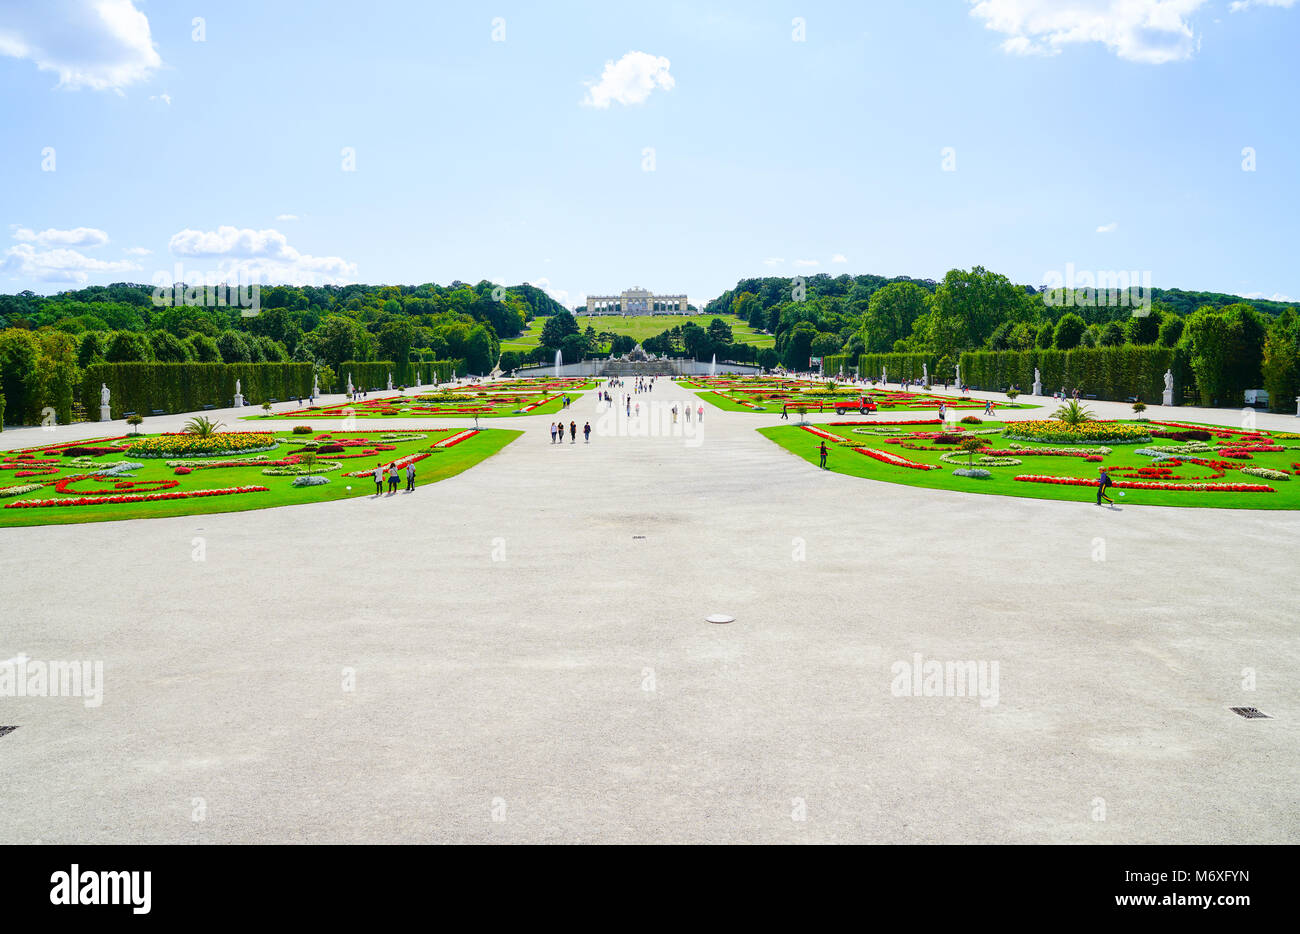 VIENNA,AUSTRIA - SEPTEMBER 4 2017; Tourists  between gardens on long path leading to Gloriette in landscaped grounds - Stock Image